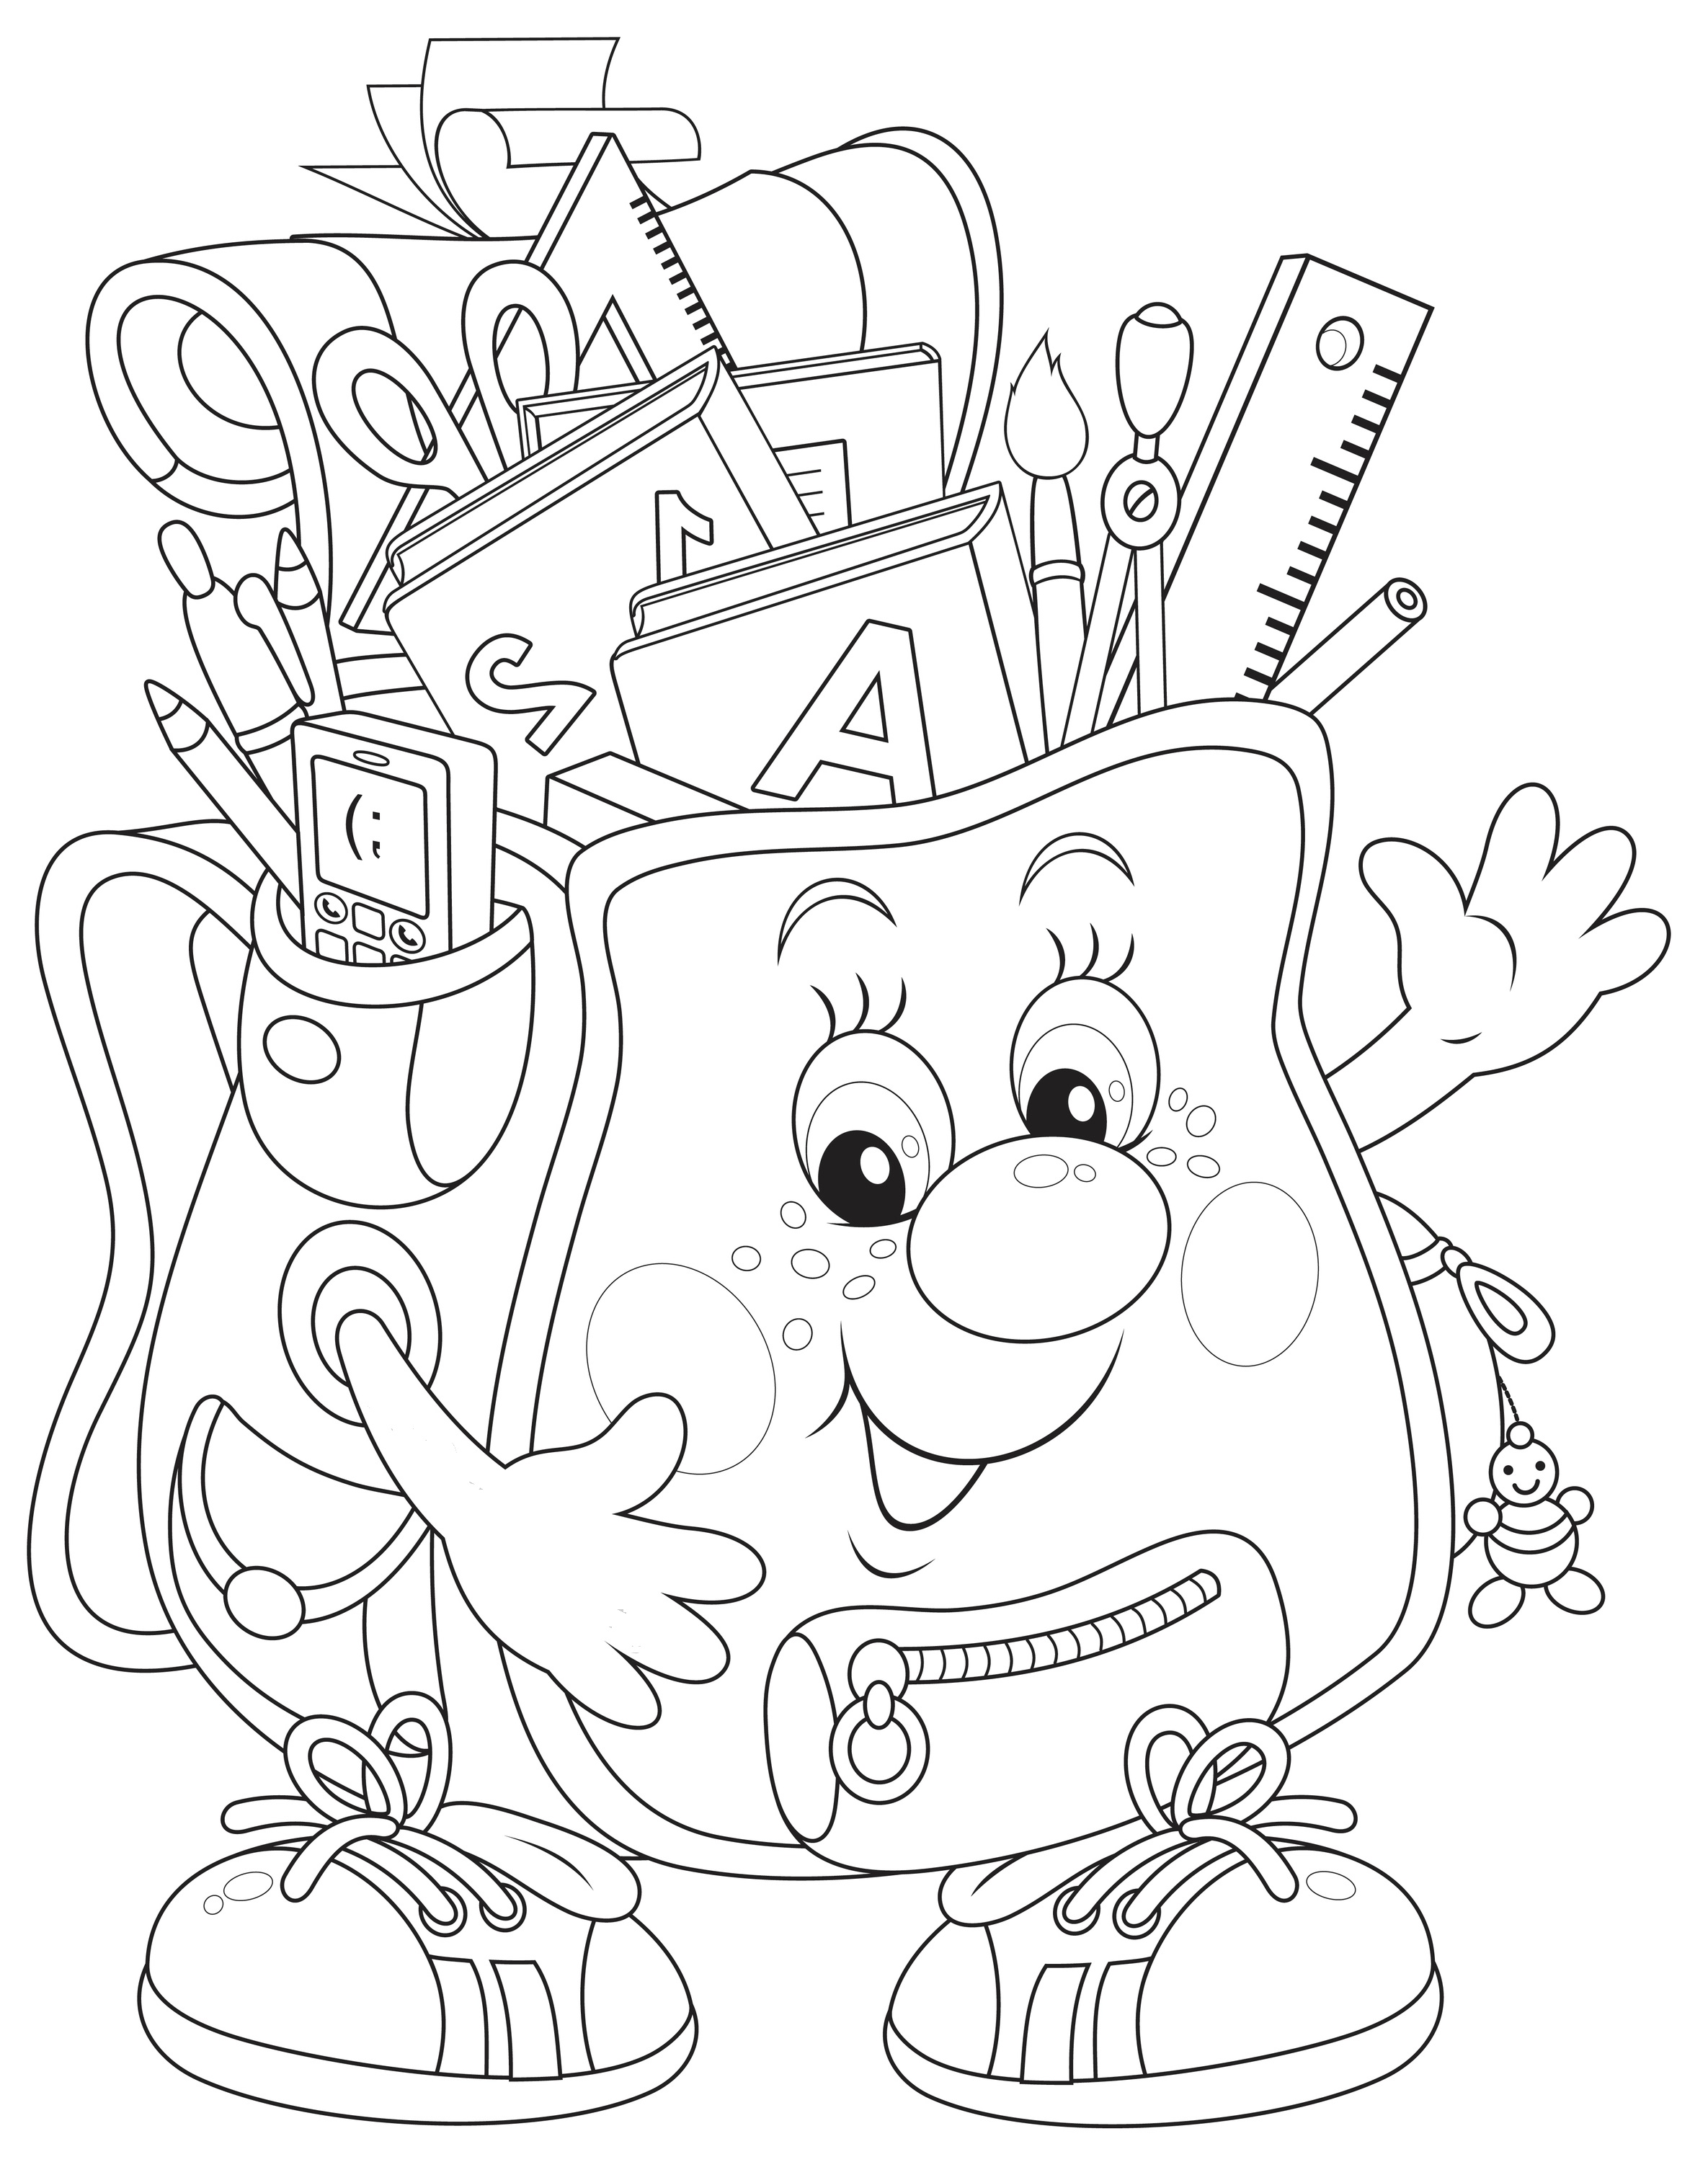 back-to-school-coloring-pages-1